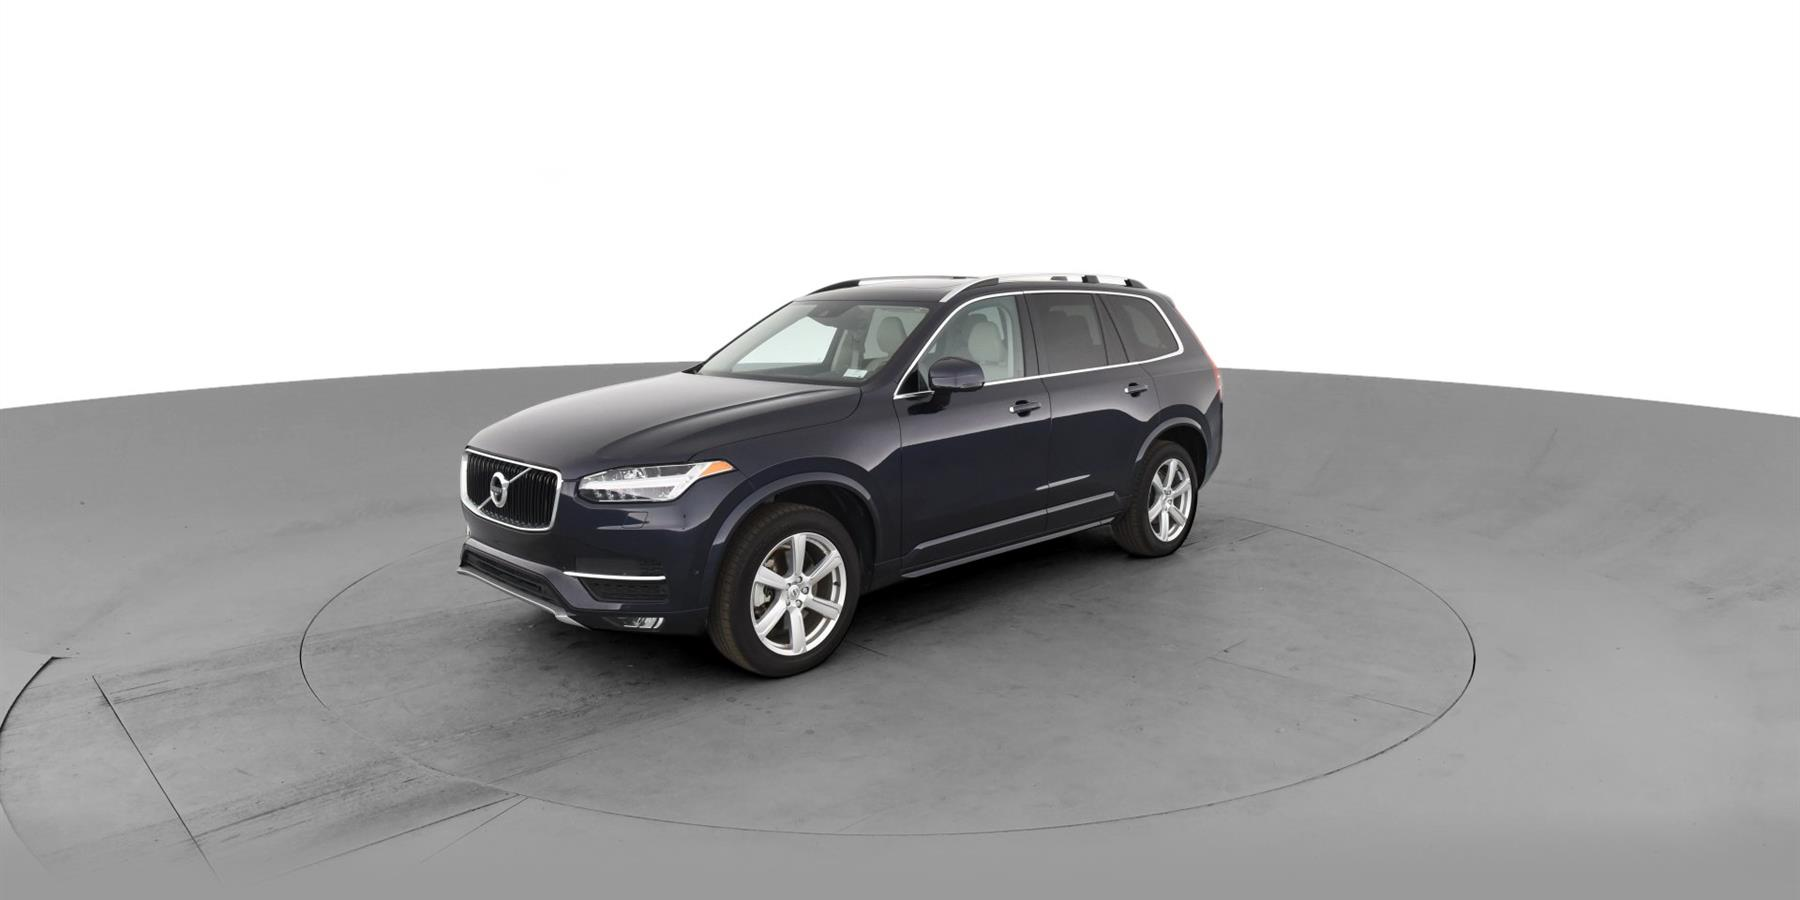 2017 Volvo XC90 T6 Momentum Sport Utility 4D for Sale | Carvana®